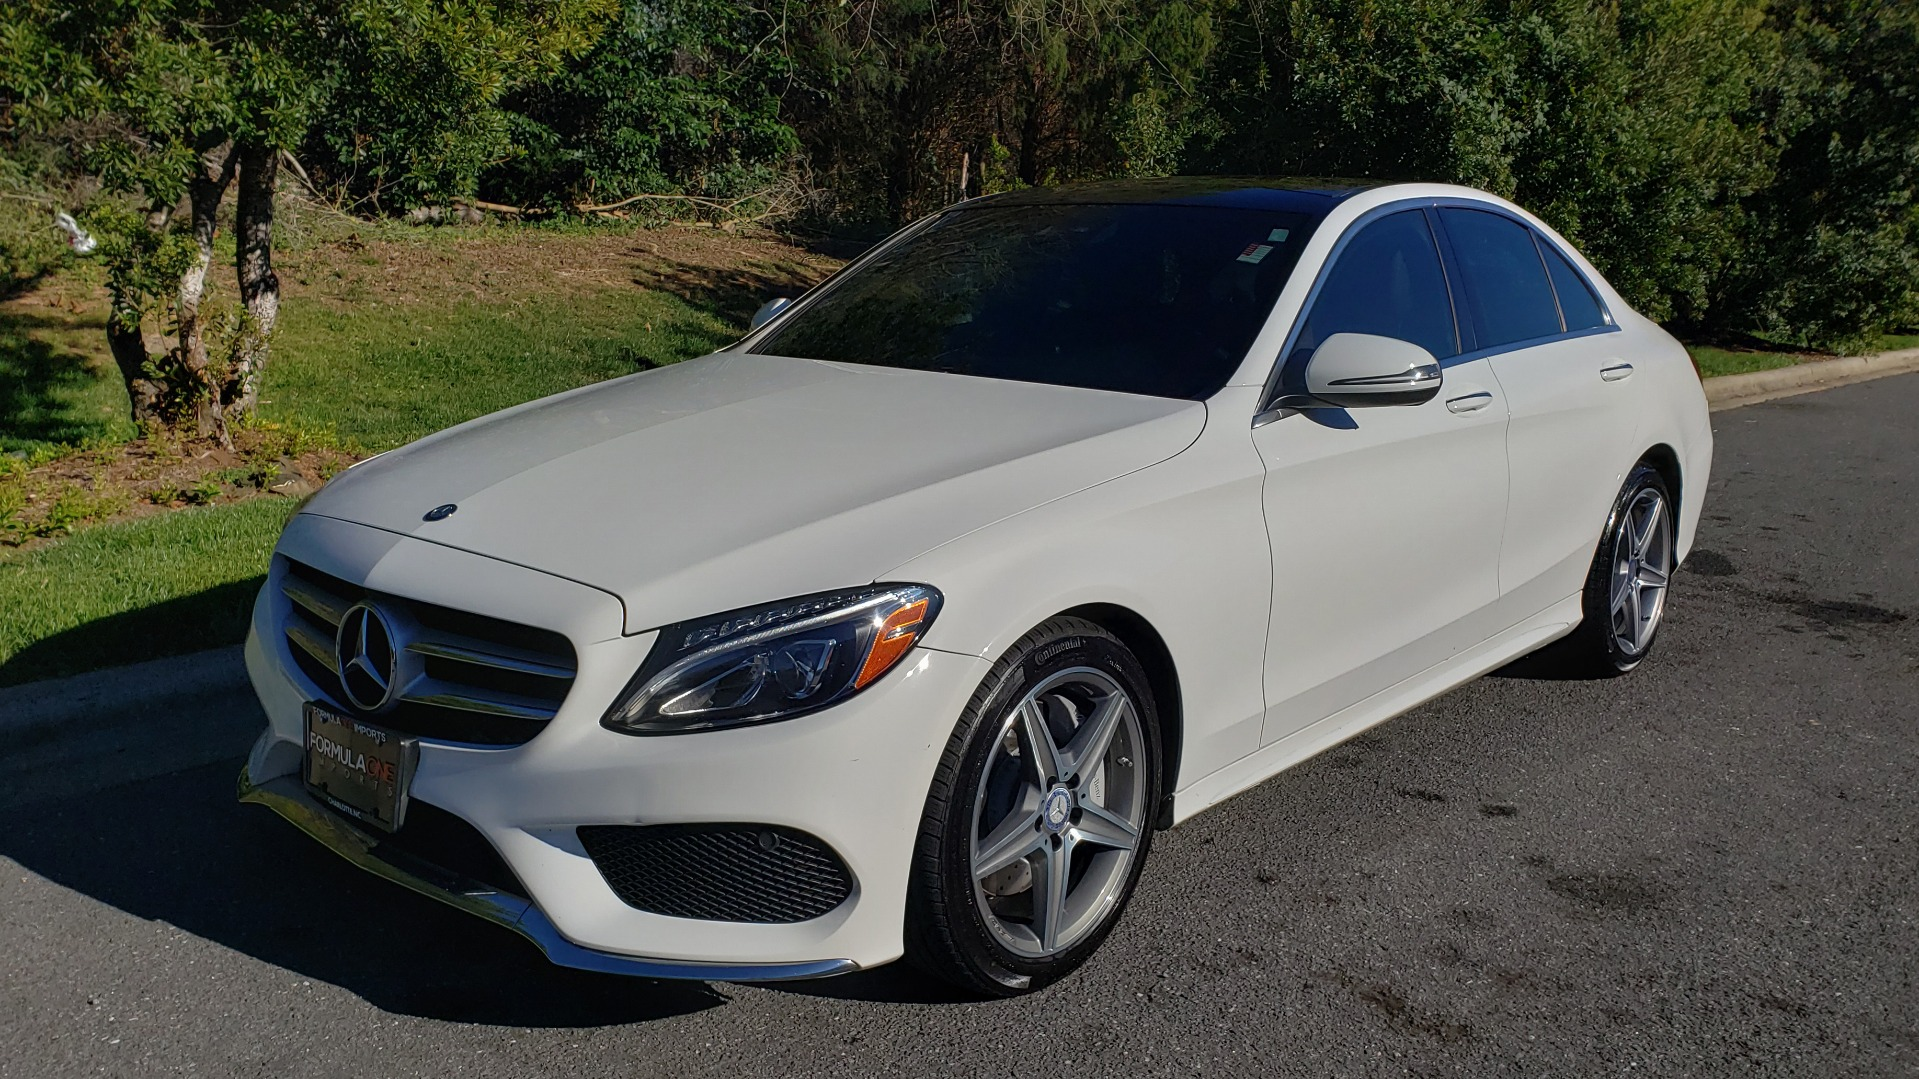 Used 2017 Mercedes-Benz C-CLASS C 300 SPORT / PREM PKG / PANO-ROOF / NAV / HTD STST / REARVIEW for sale Sold at Formula Imports in Charlotte NC 28227 1